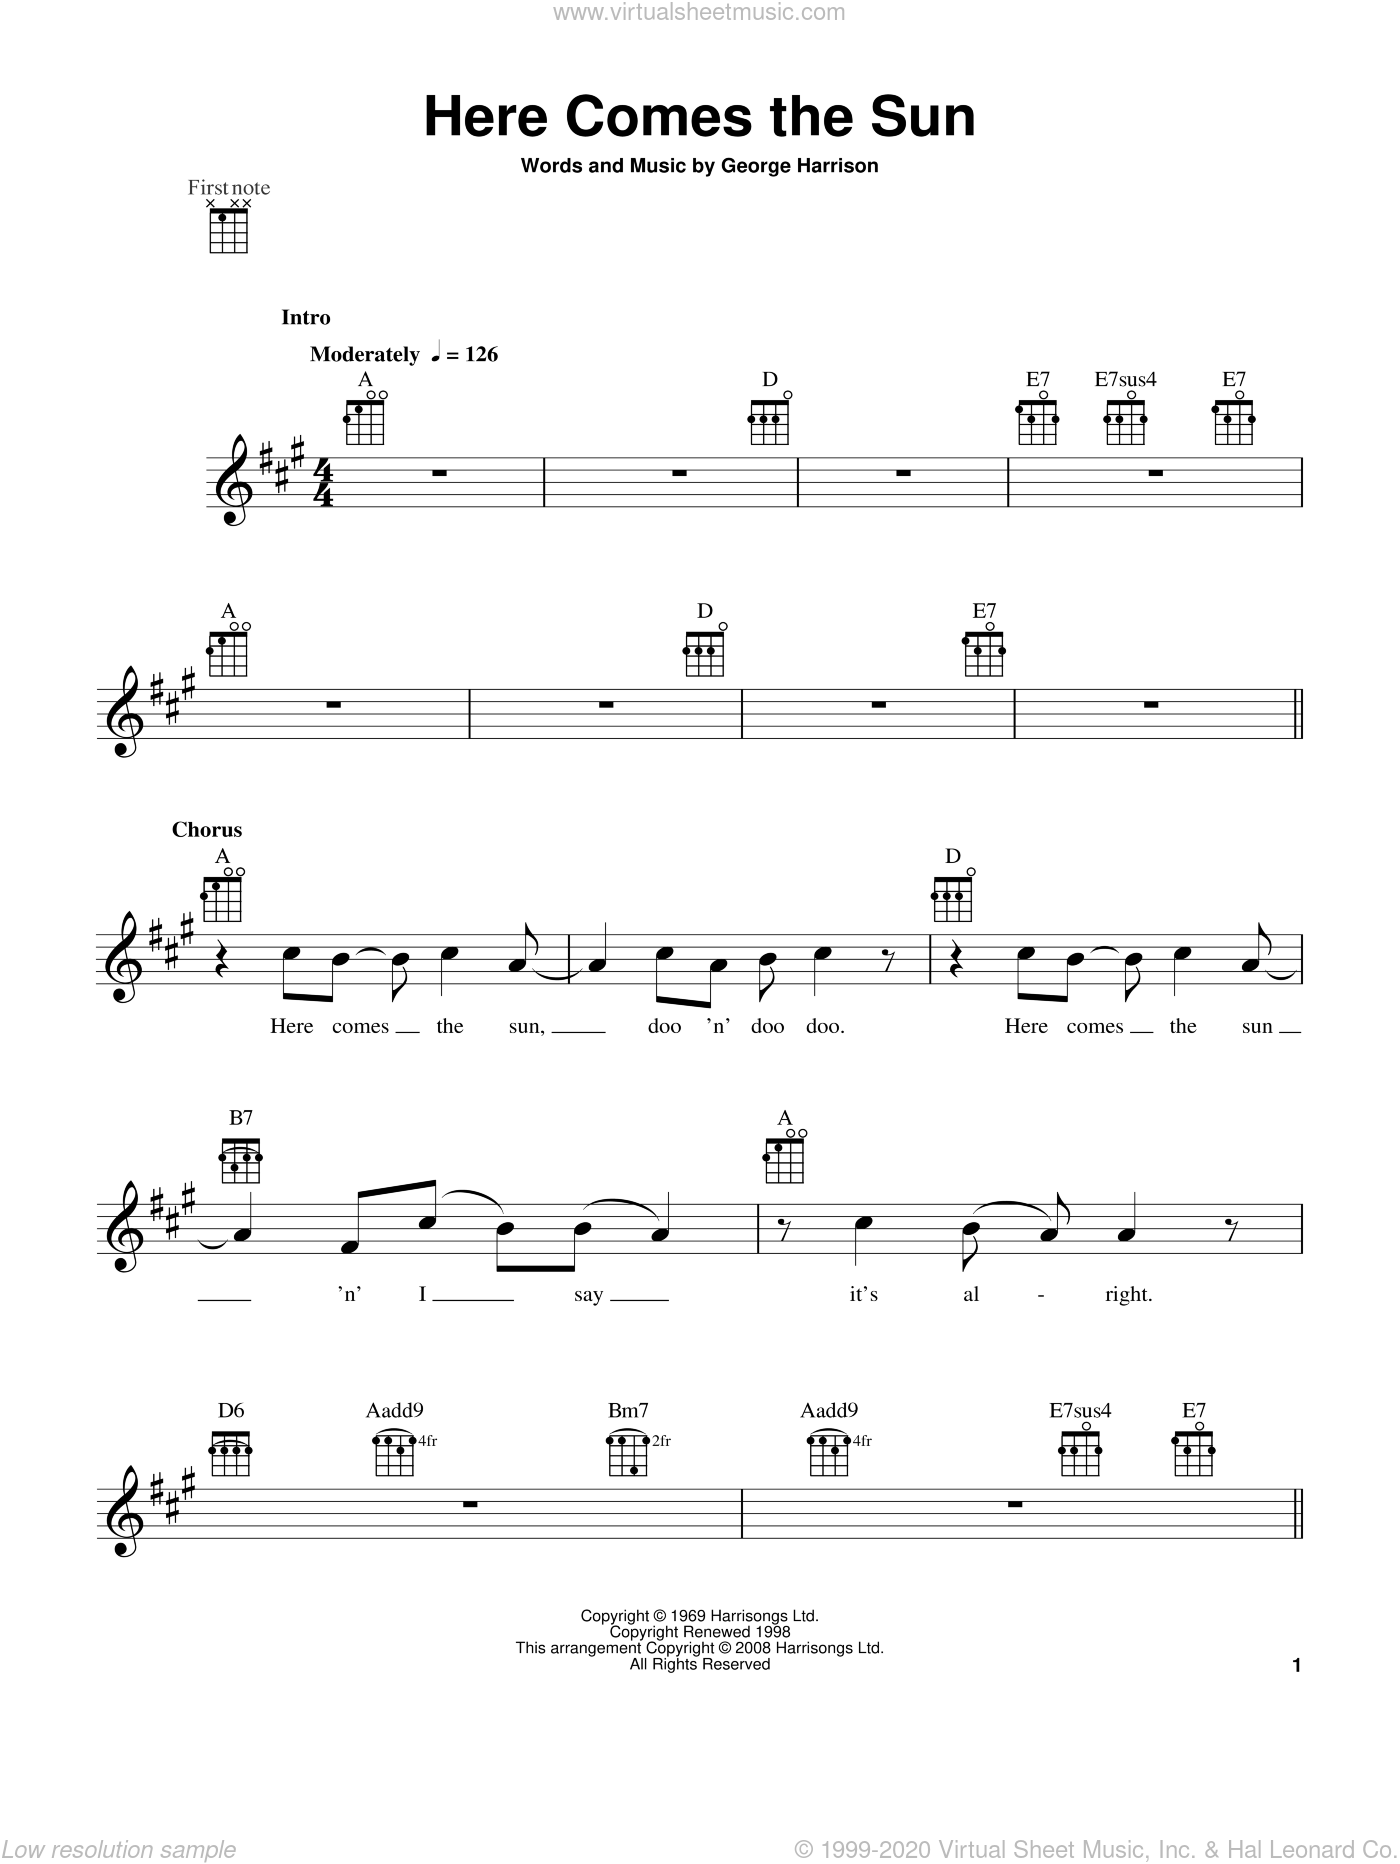 Here Comes The Sun sheet music for ukulele by George Harrison